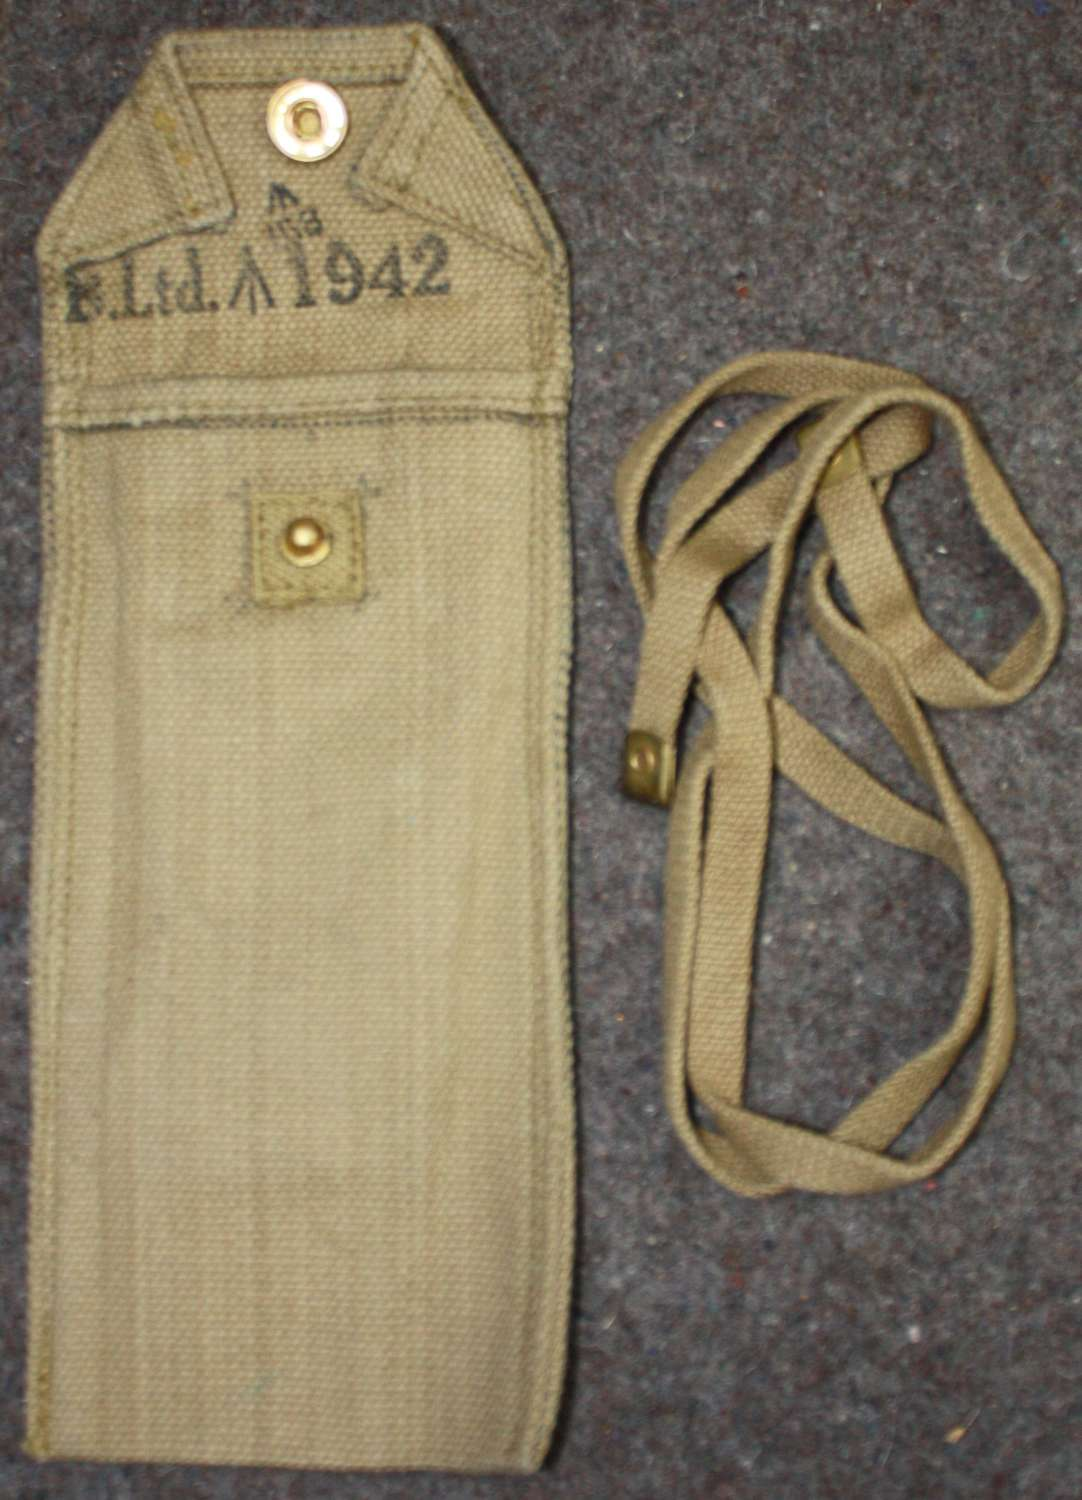 A WWII AIRBORNE BIKE REPAIRE KIT POUCH AND STRAP